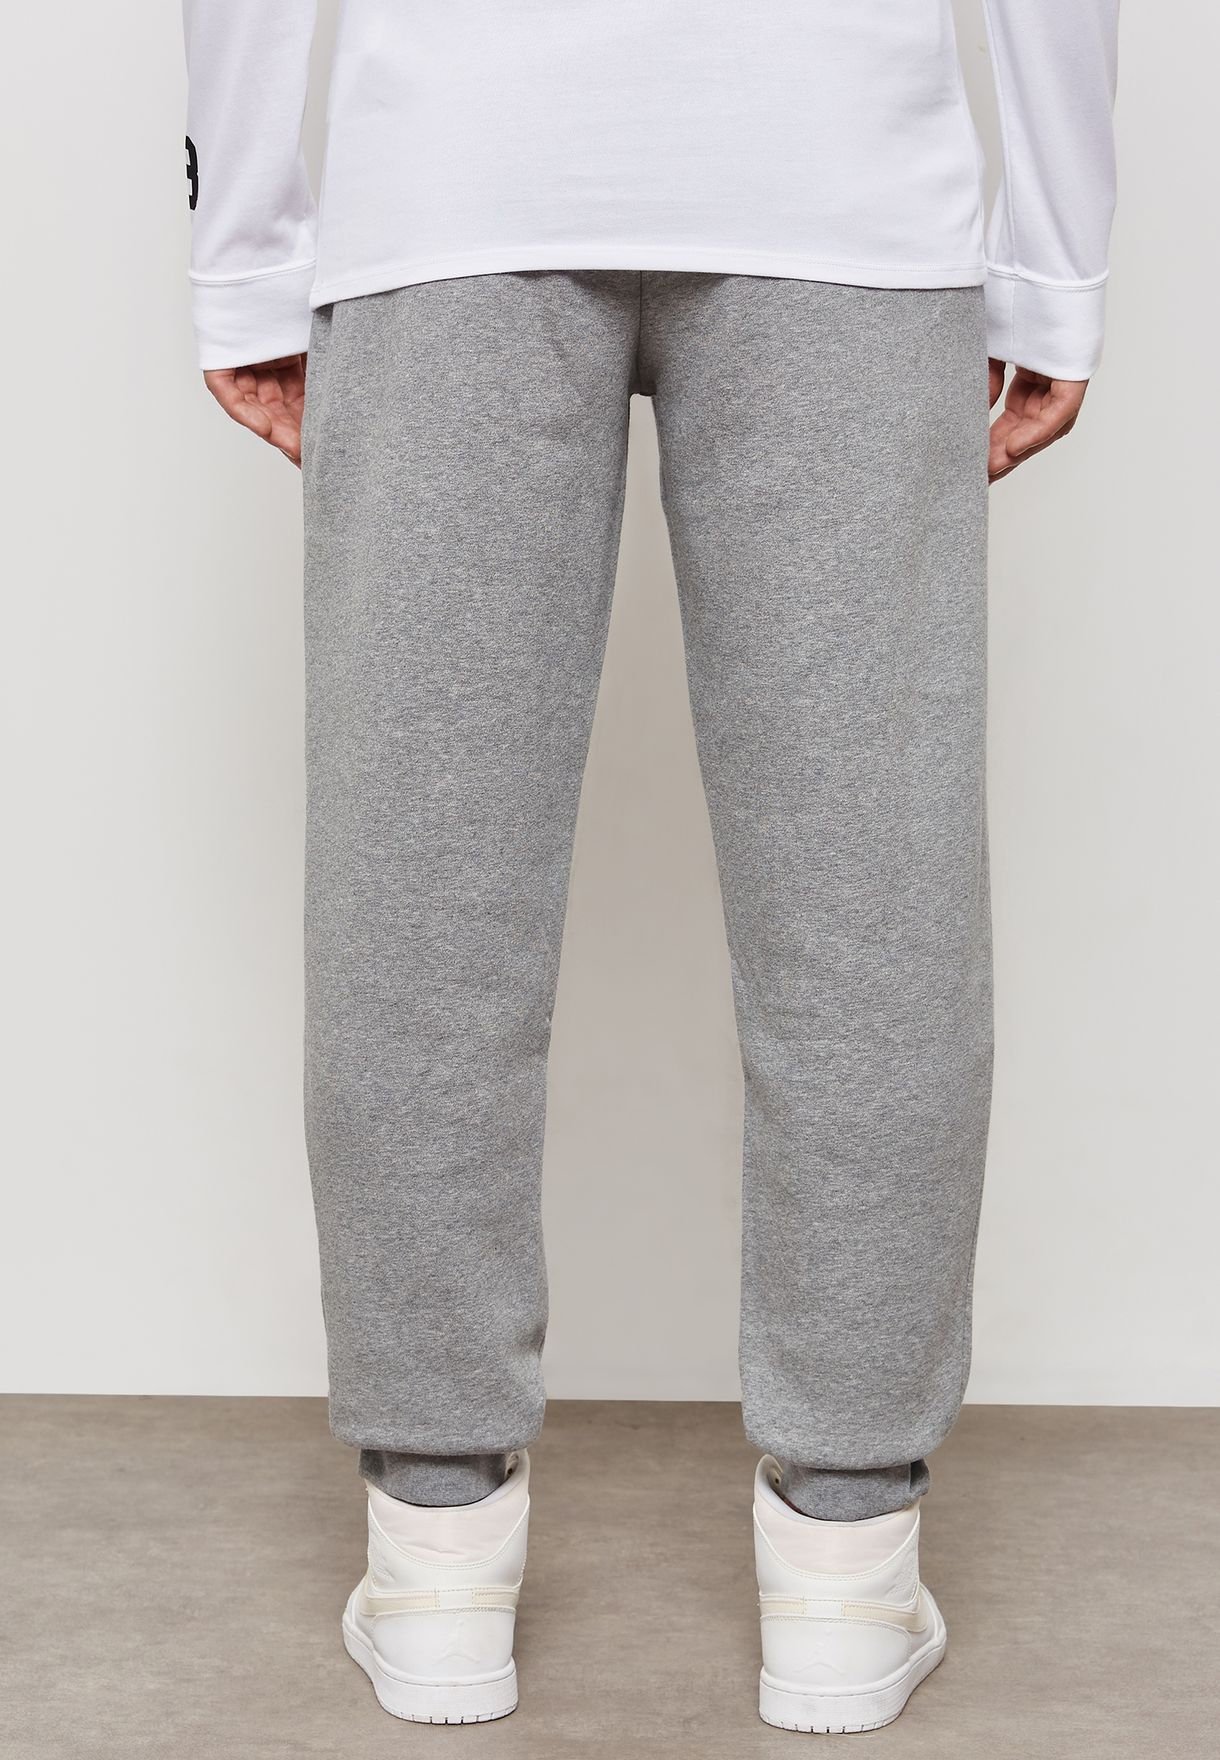 b462a338423b36 Shop Nike grey Jordan Jumpman Air Fleece Sweatpants AT4913-091 for ...